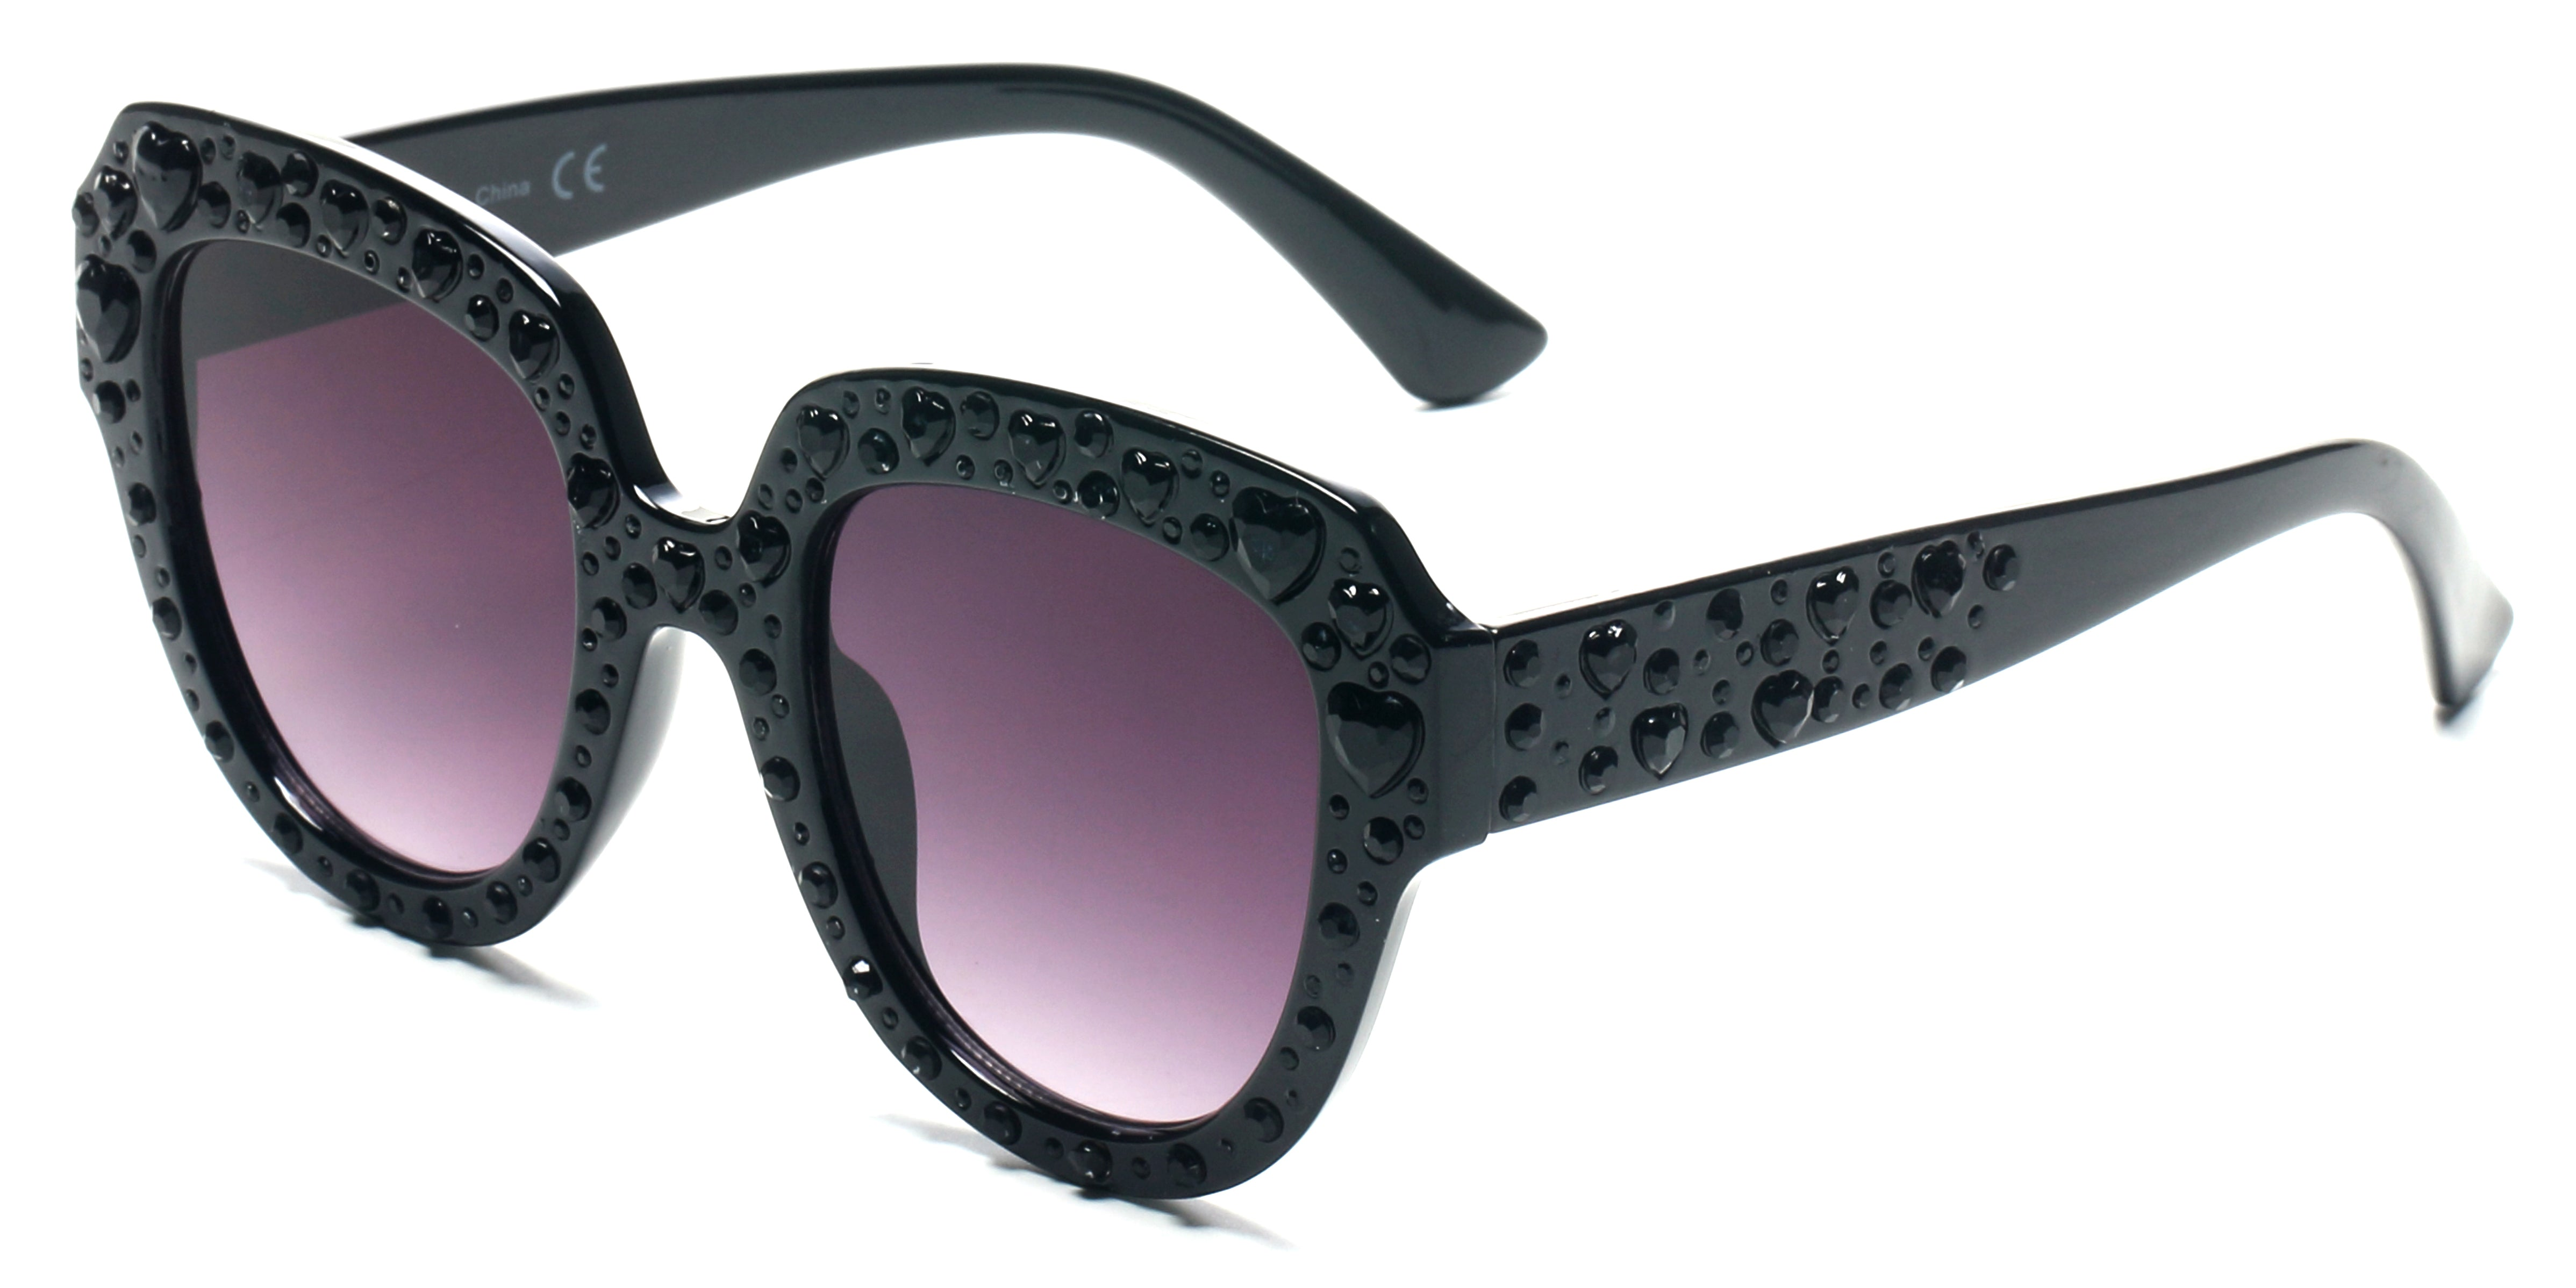 Women Retro Bold Rhinestone Round Cat Eye UV Protection Fashion Sunglasses - Black